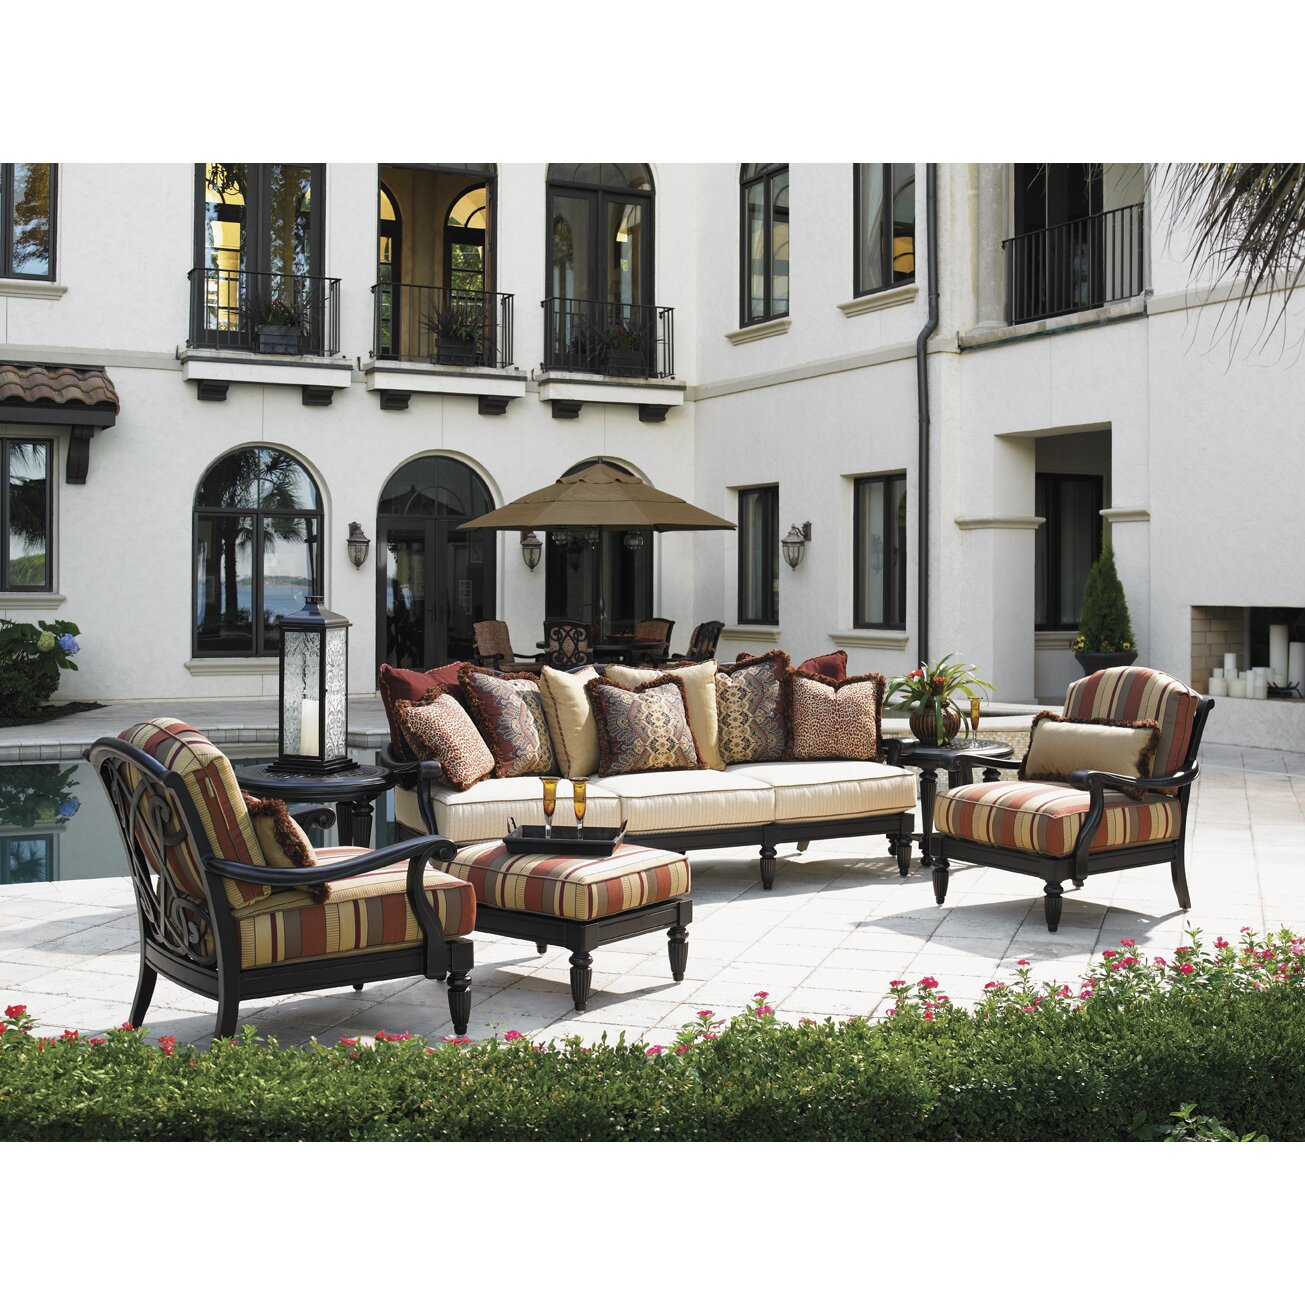 Tommy Bahama Used Patio Furniture: Tommy Bahama Outdoor Kingstown Sedona Lounge Chair And